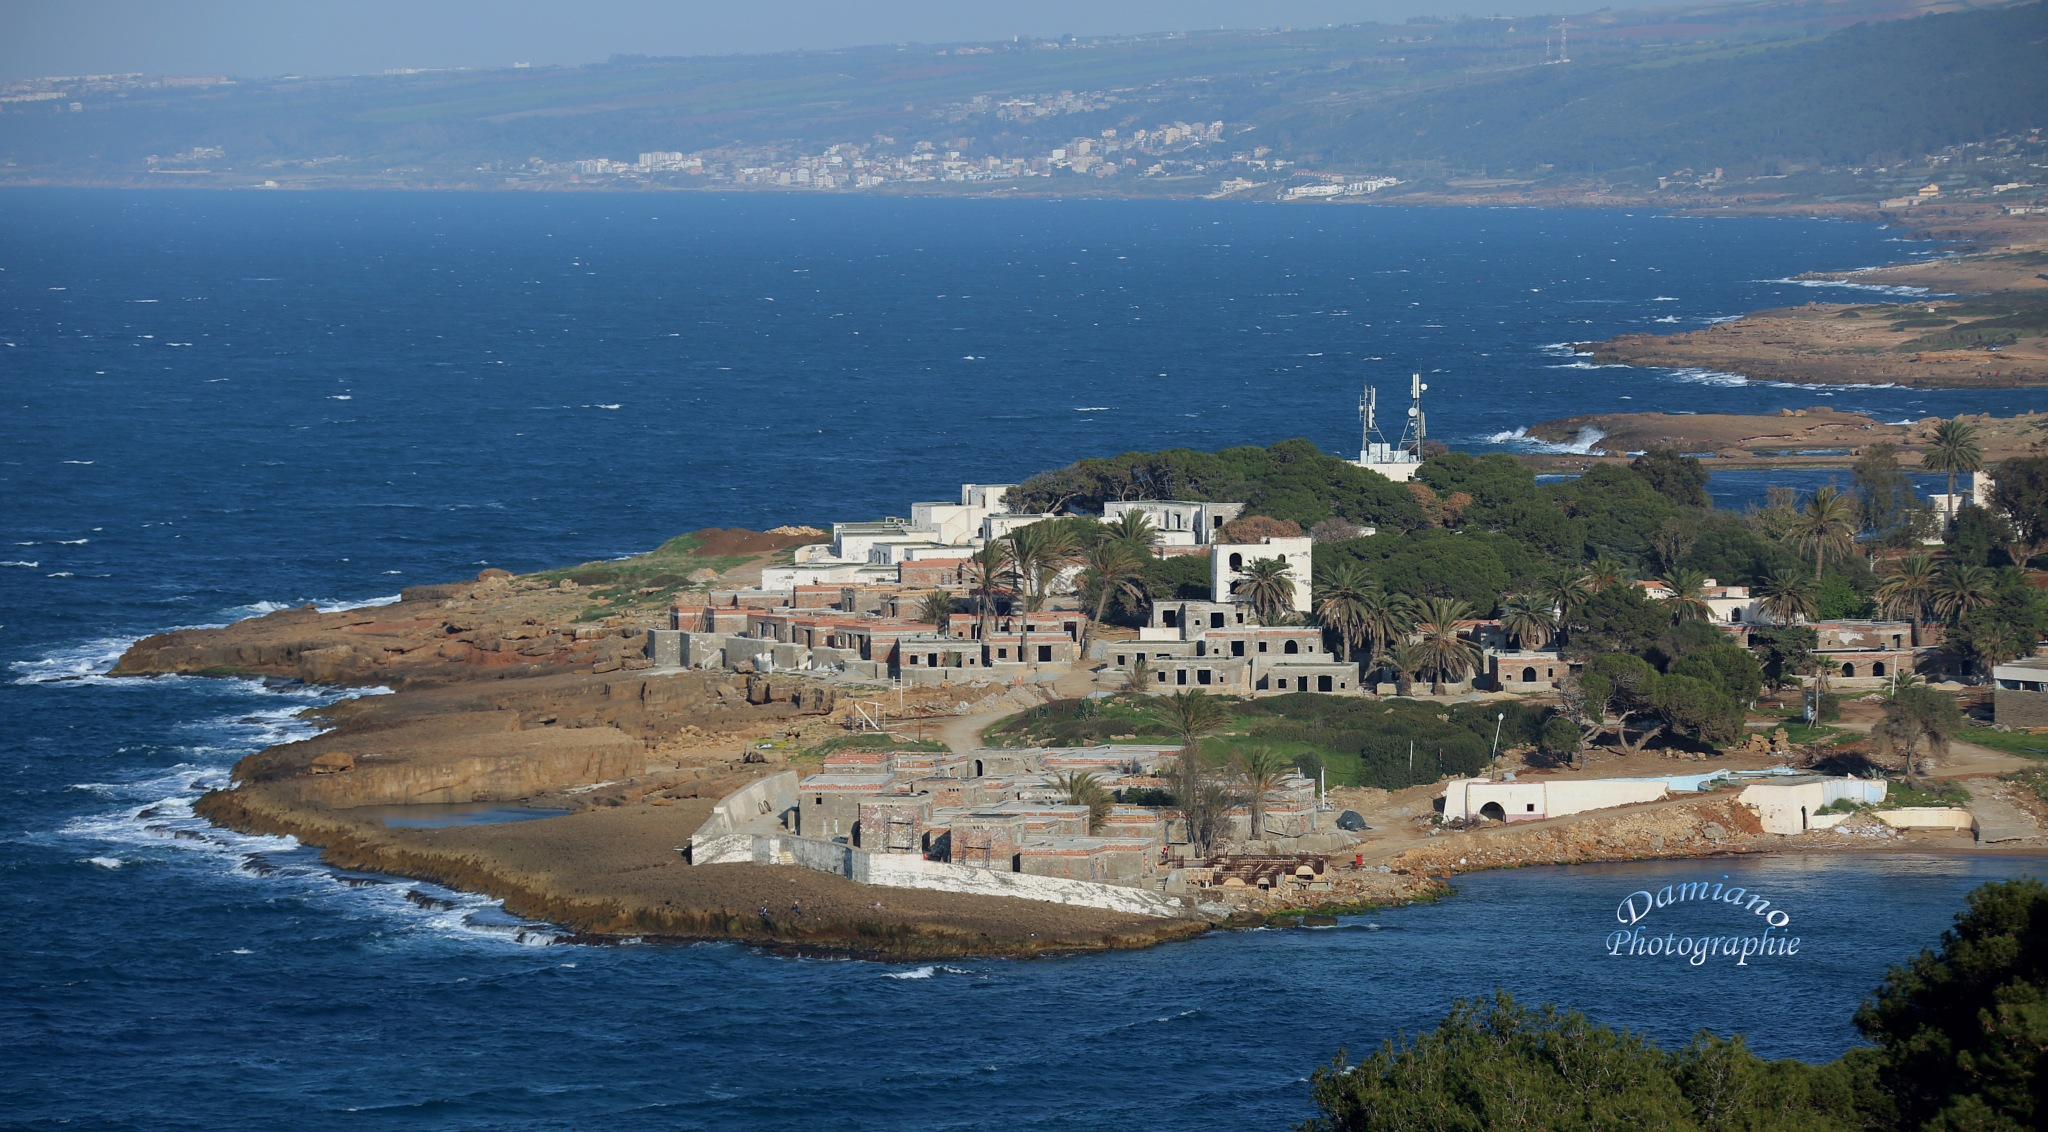 TIPAZA The Golden Horn by Damiano Damiani